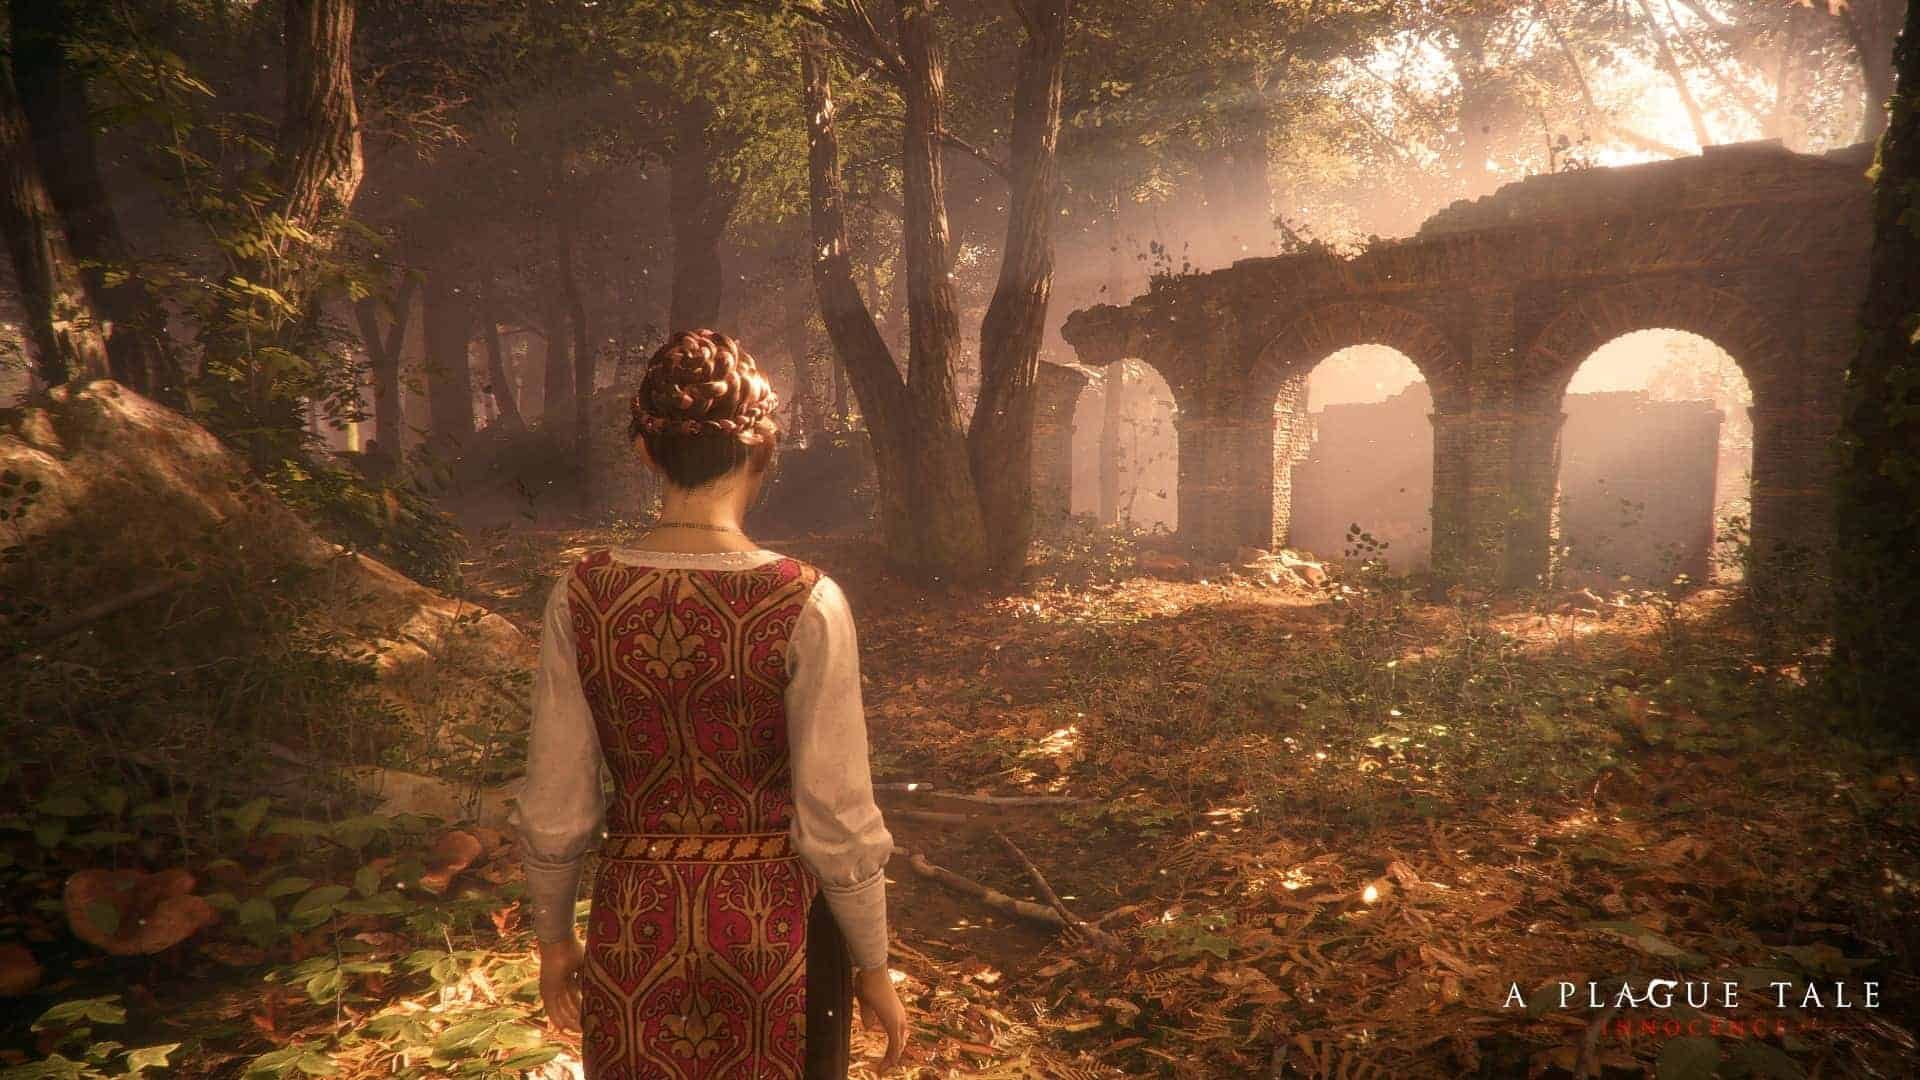 A Plague Tale Innocence Free Download - Install-Game